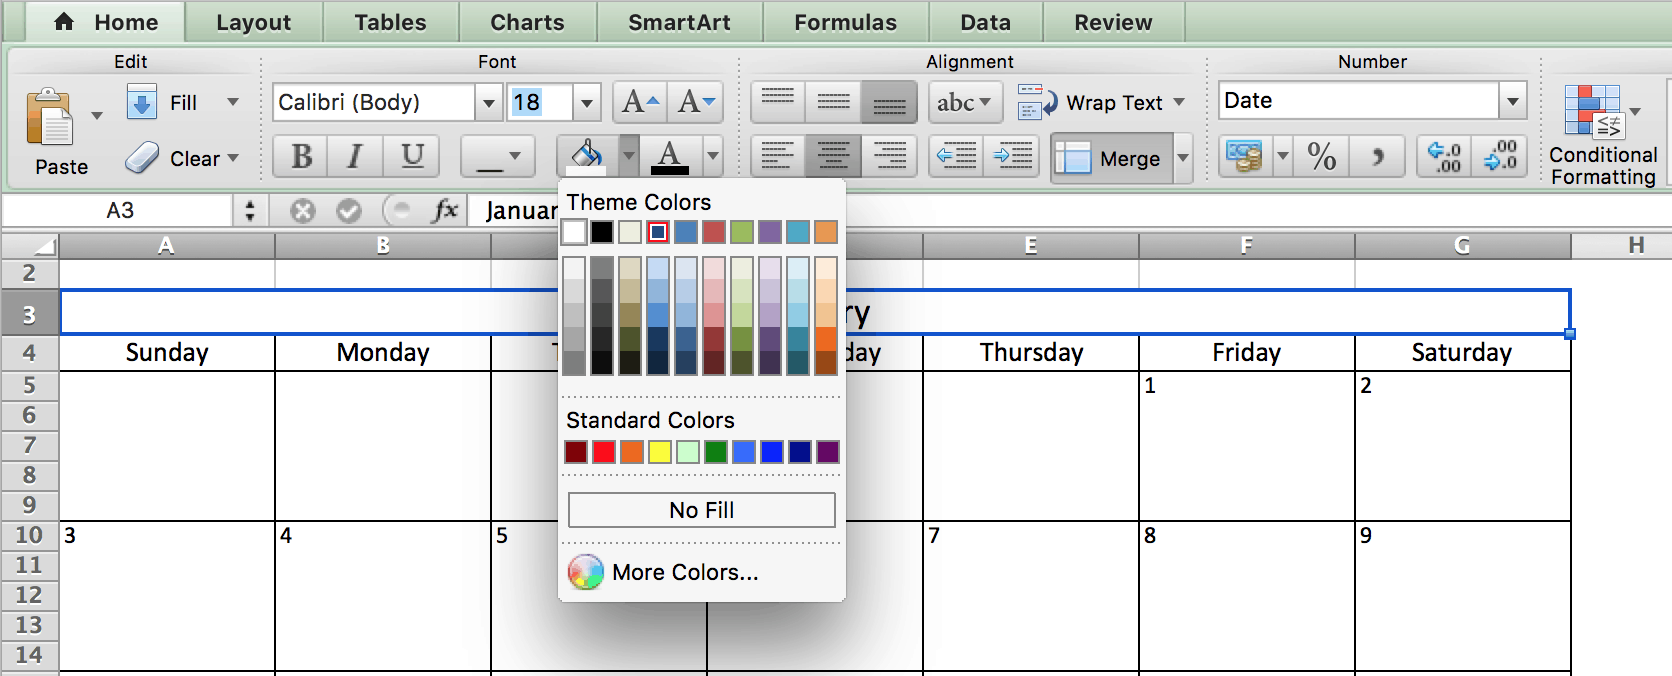 Ediblewildsus  Remarkable Make A  Calendar In Excel Includes Free Template With Heavenly Choosing Colors  Calendar In Excel With Easy On The Eye Smart Tag Excel Also Excel Cell Character Count In Addition How To Sum Up In Excel And Excel Pivot Table Basics As Well As Excel Keystrokes Additionally Automate Excel Reports From Smartsheetcom With Ediblewildsus  Heavenly Make A  Calendar In Excel Includes Free Template With Easy On The Eye Choosing Colors  Calendar In Excel And Remarkable Smart Tag Excel Also Excel Cell Character Count In Addition How To Sum Up In Excel From Smartsheetcom